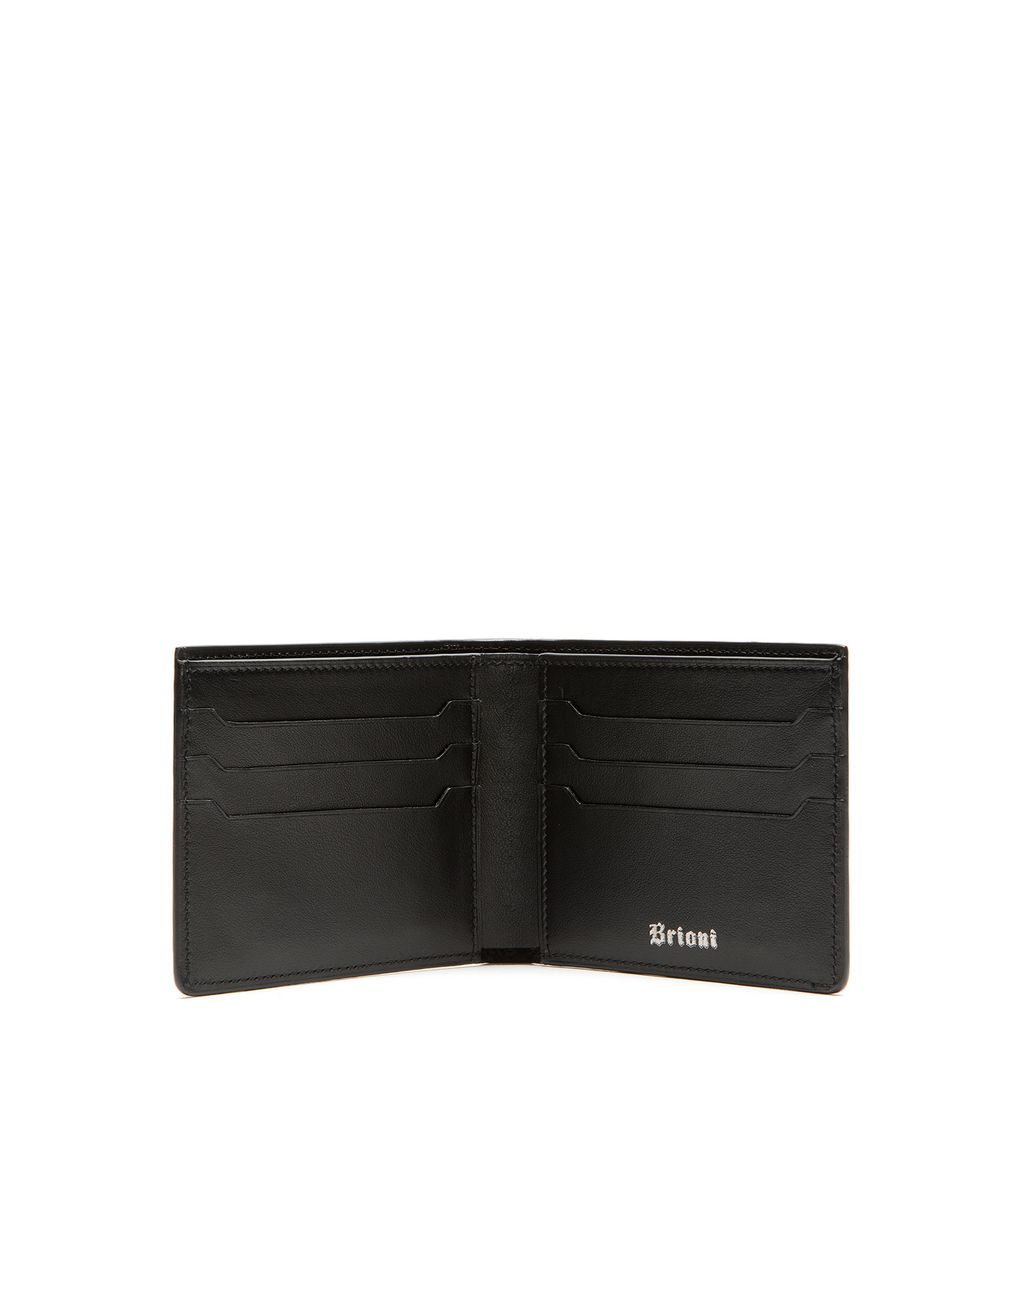 BRIONI Oxblood Slim Wallet Leather Goods U r